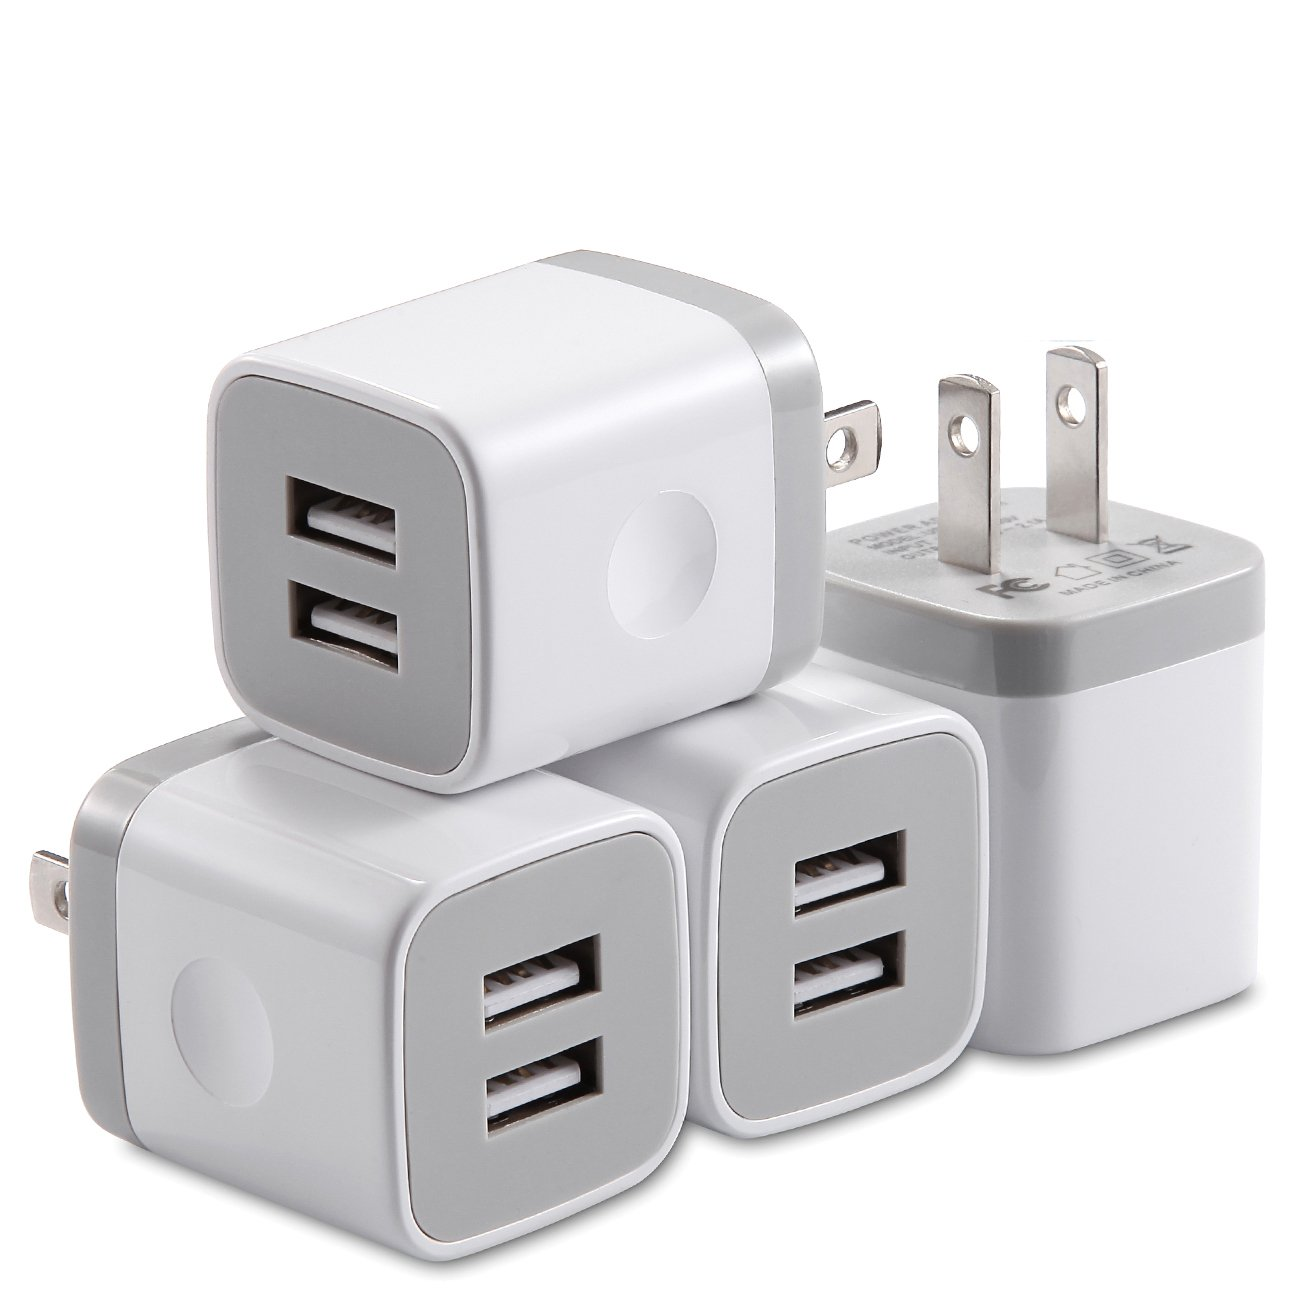 X-EDITION USB Wall Charger,4-Pack 2.1A Dual Port USB Cube Power Adapter Wall Charger Plug Charging Block Cube for Phone 8/7/6 Plus/X, Pad, Samsung Galaxy S5 S6 S7 Edge,LG, Android (White) by X-EDITION